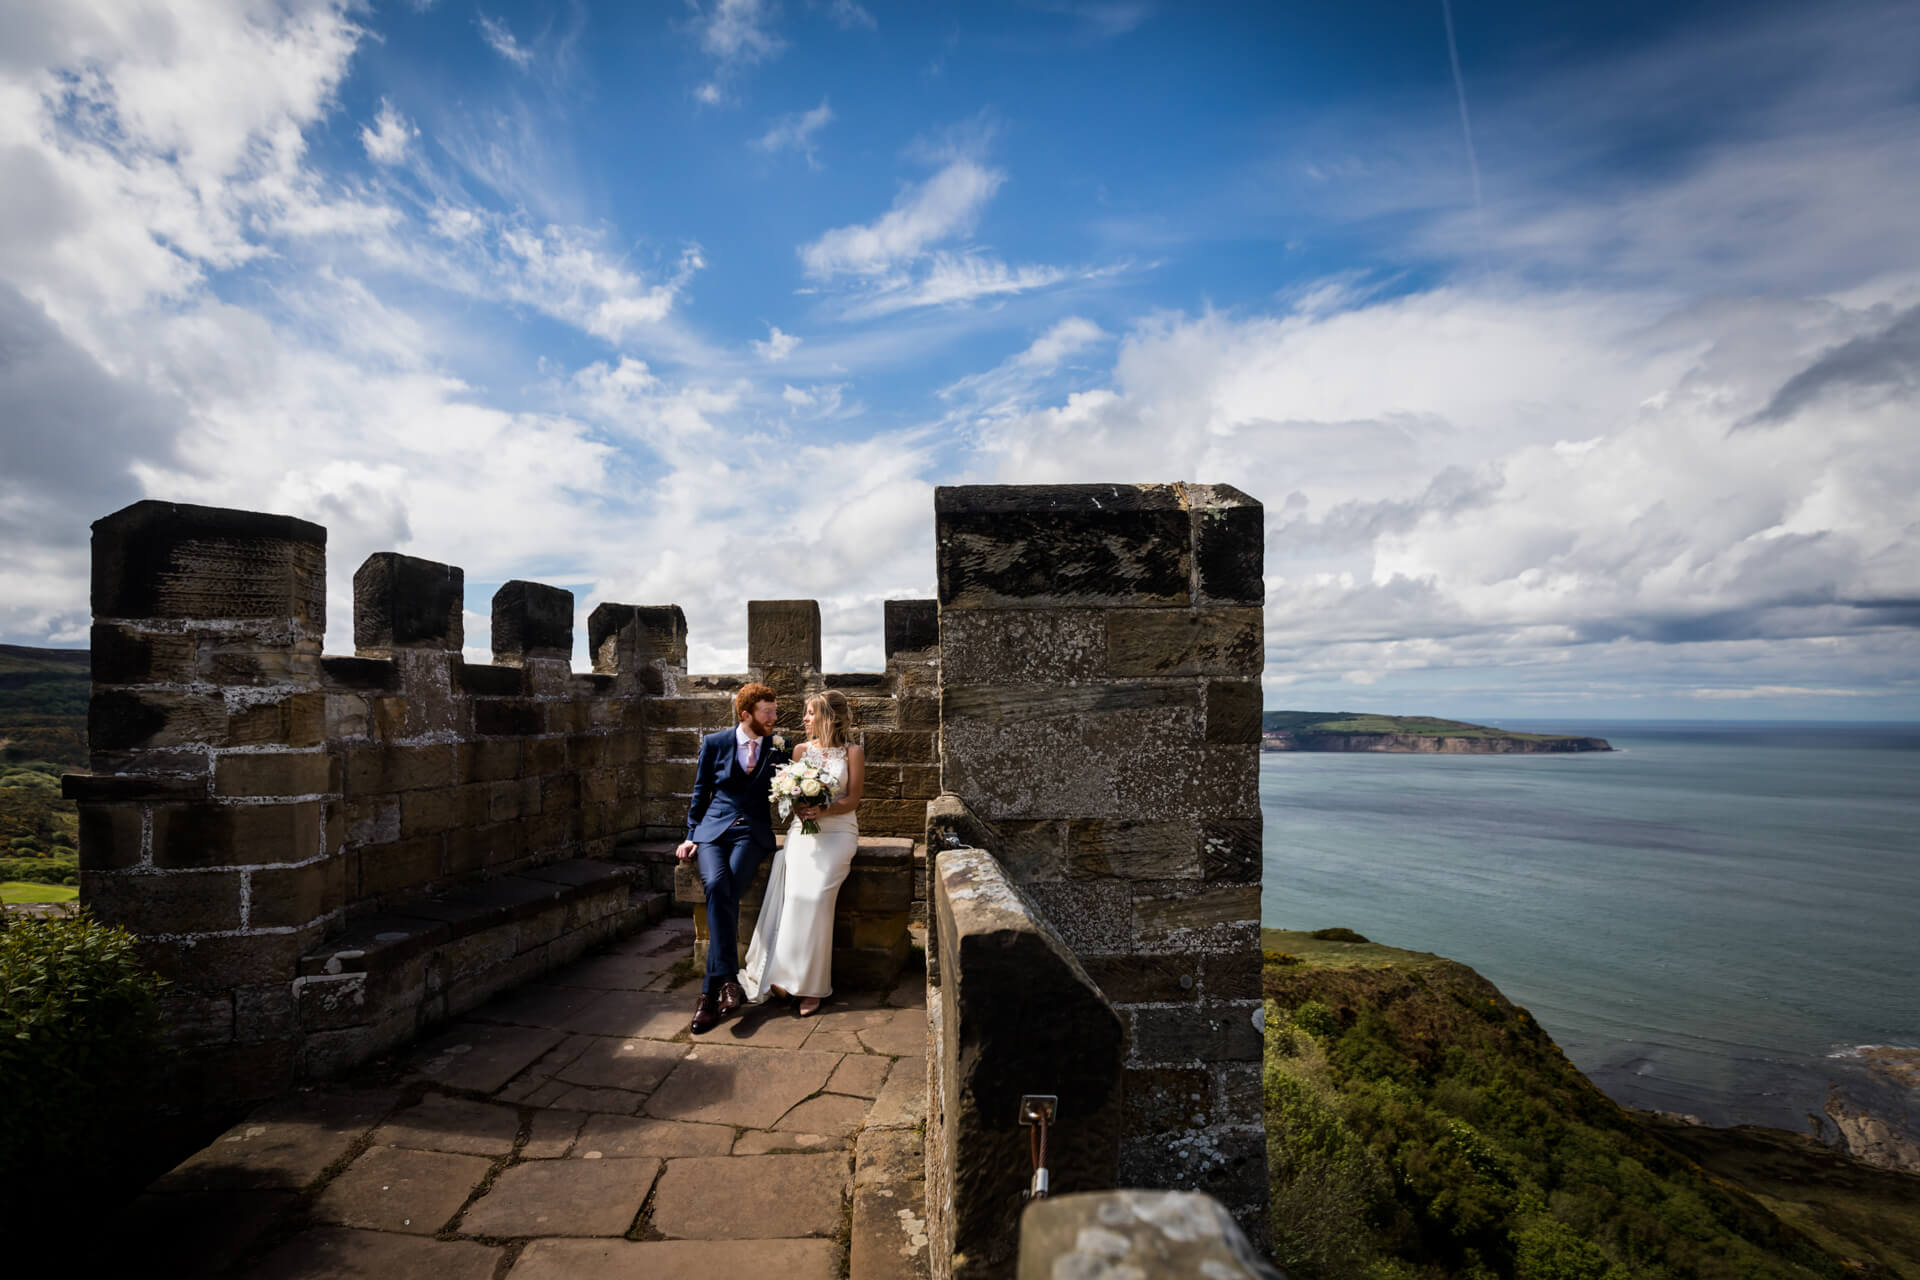 wedding couple sitting in the castle ruins at Raven hall